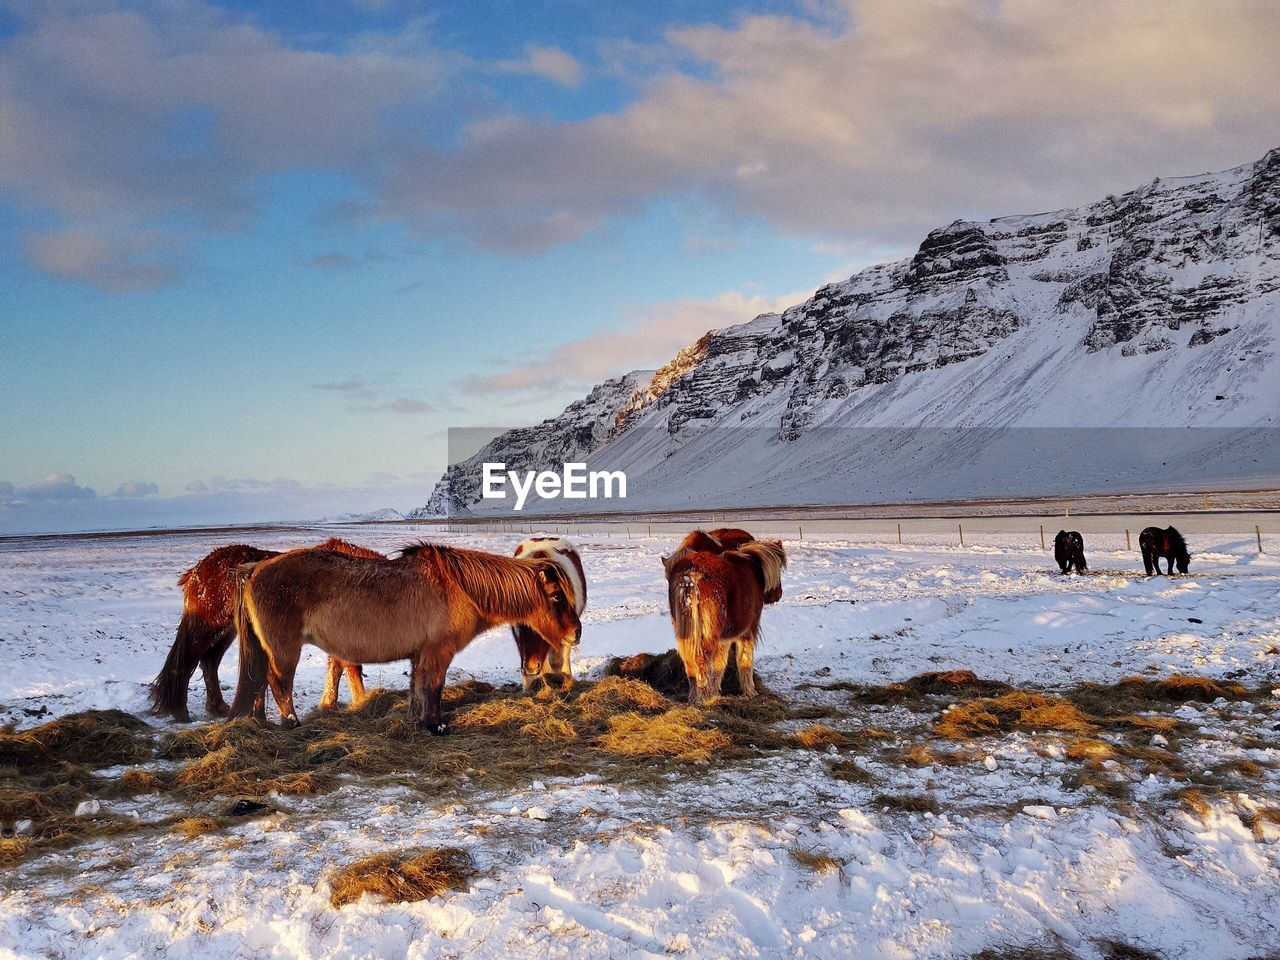 Horses On Snow Covered Landscape Against Sky